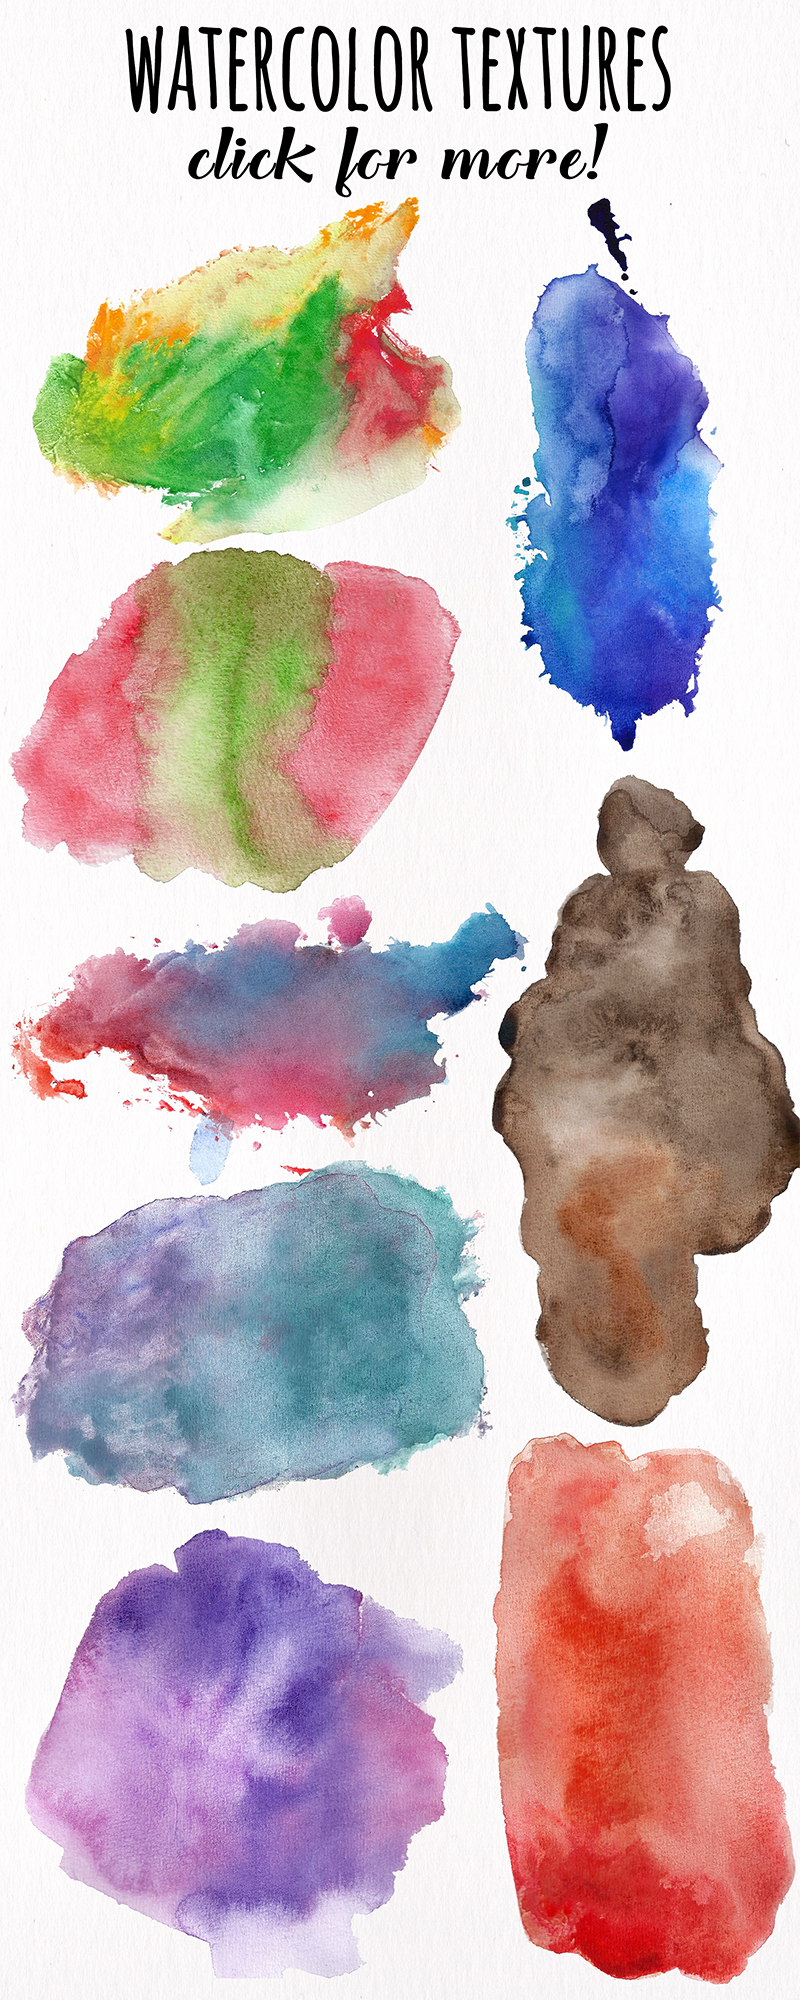 Watercolor Textures - card edition example image 15